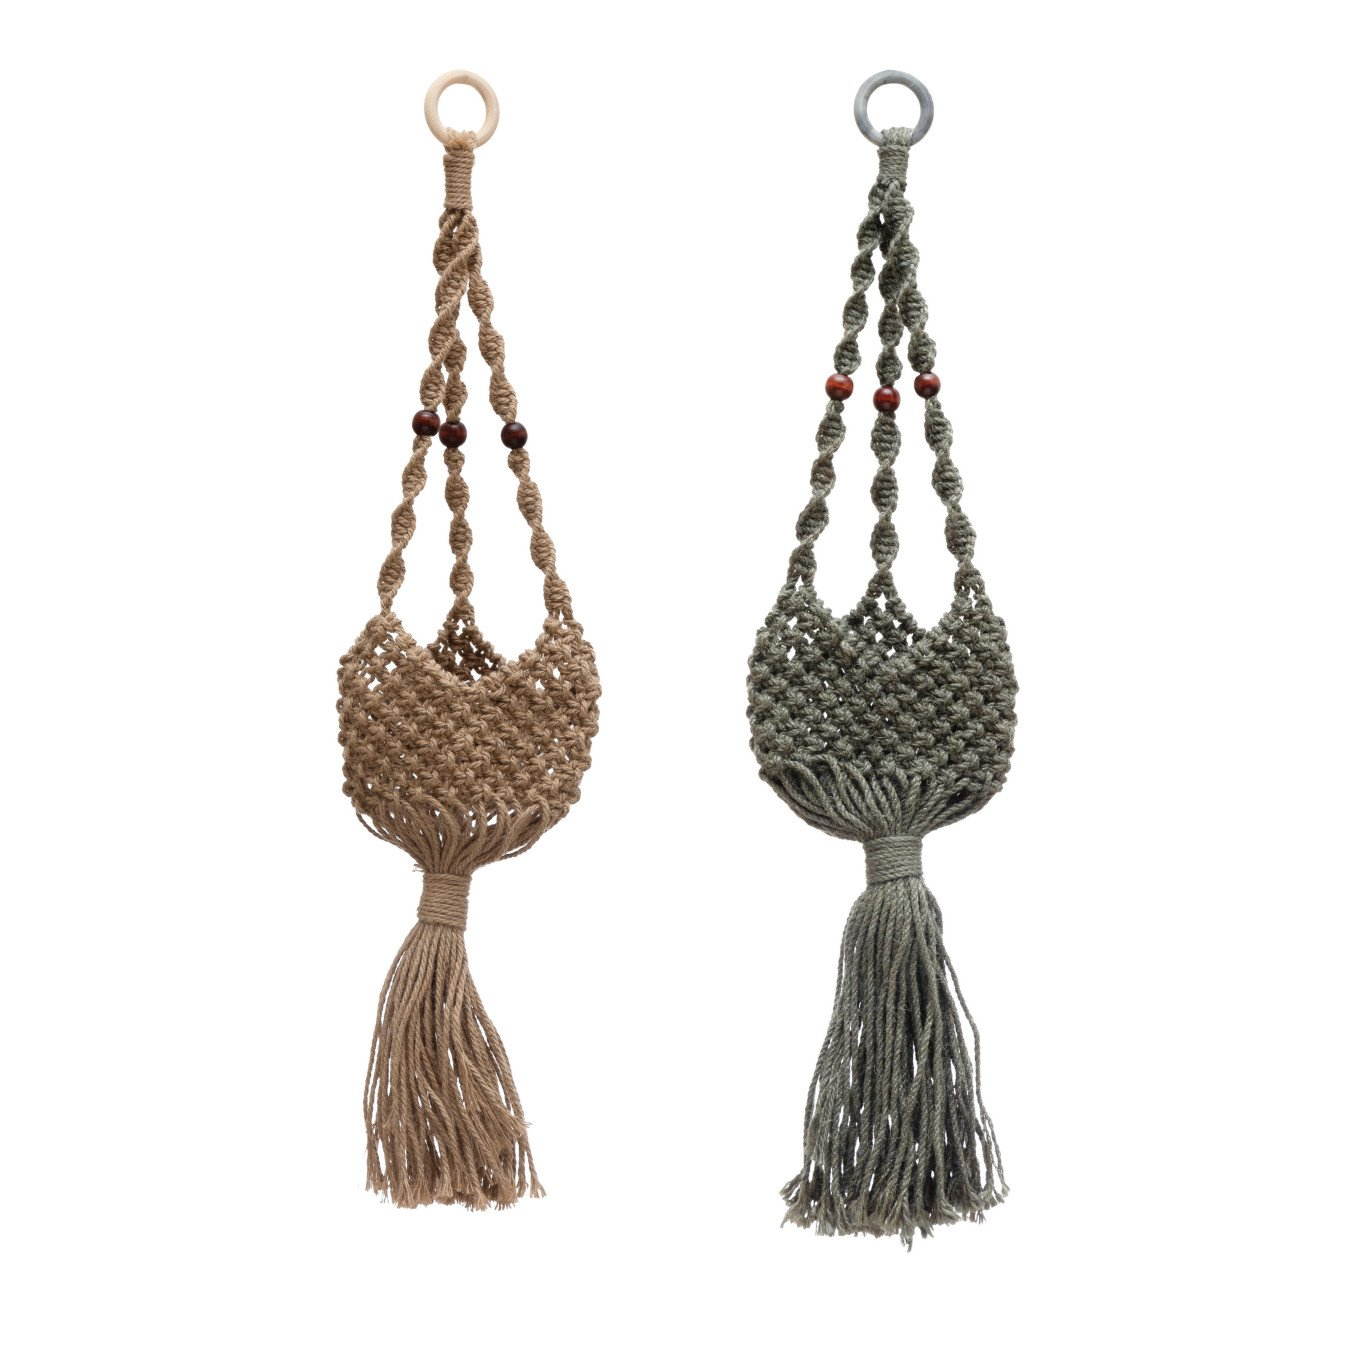 Jute Plant Hanger, 2 Colors